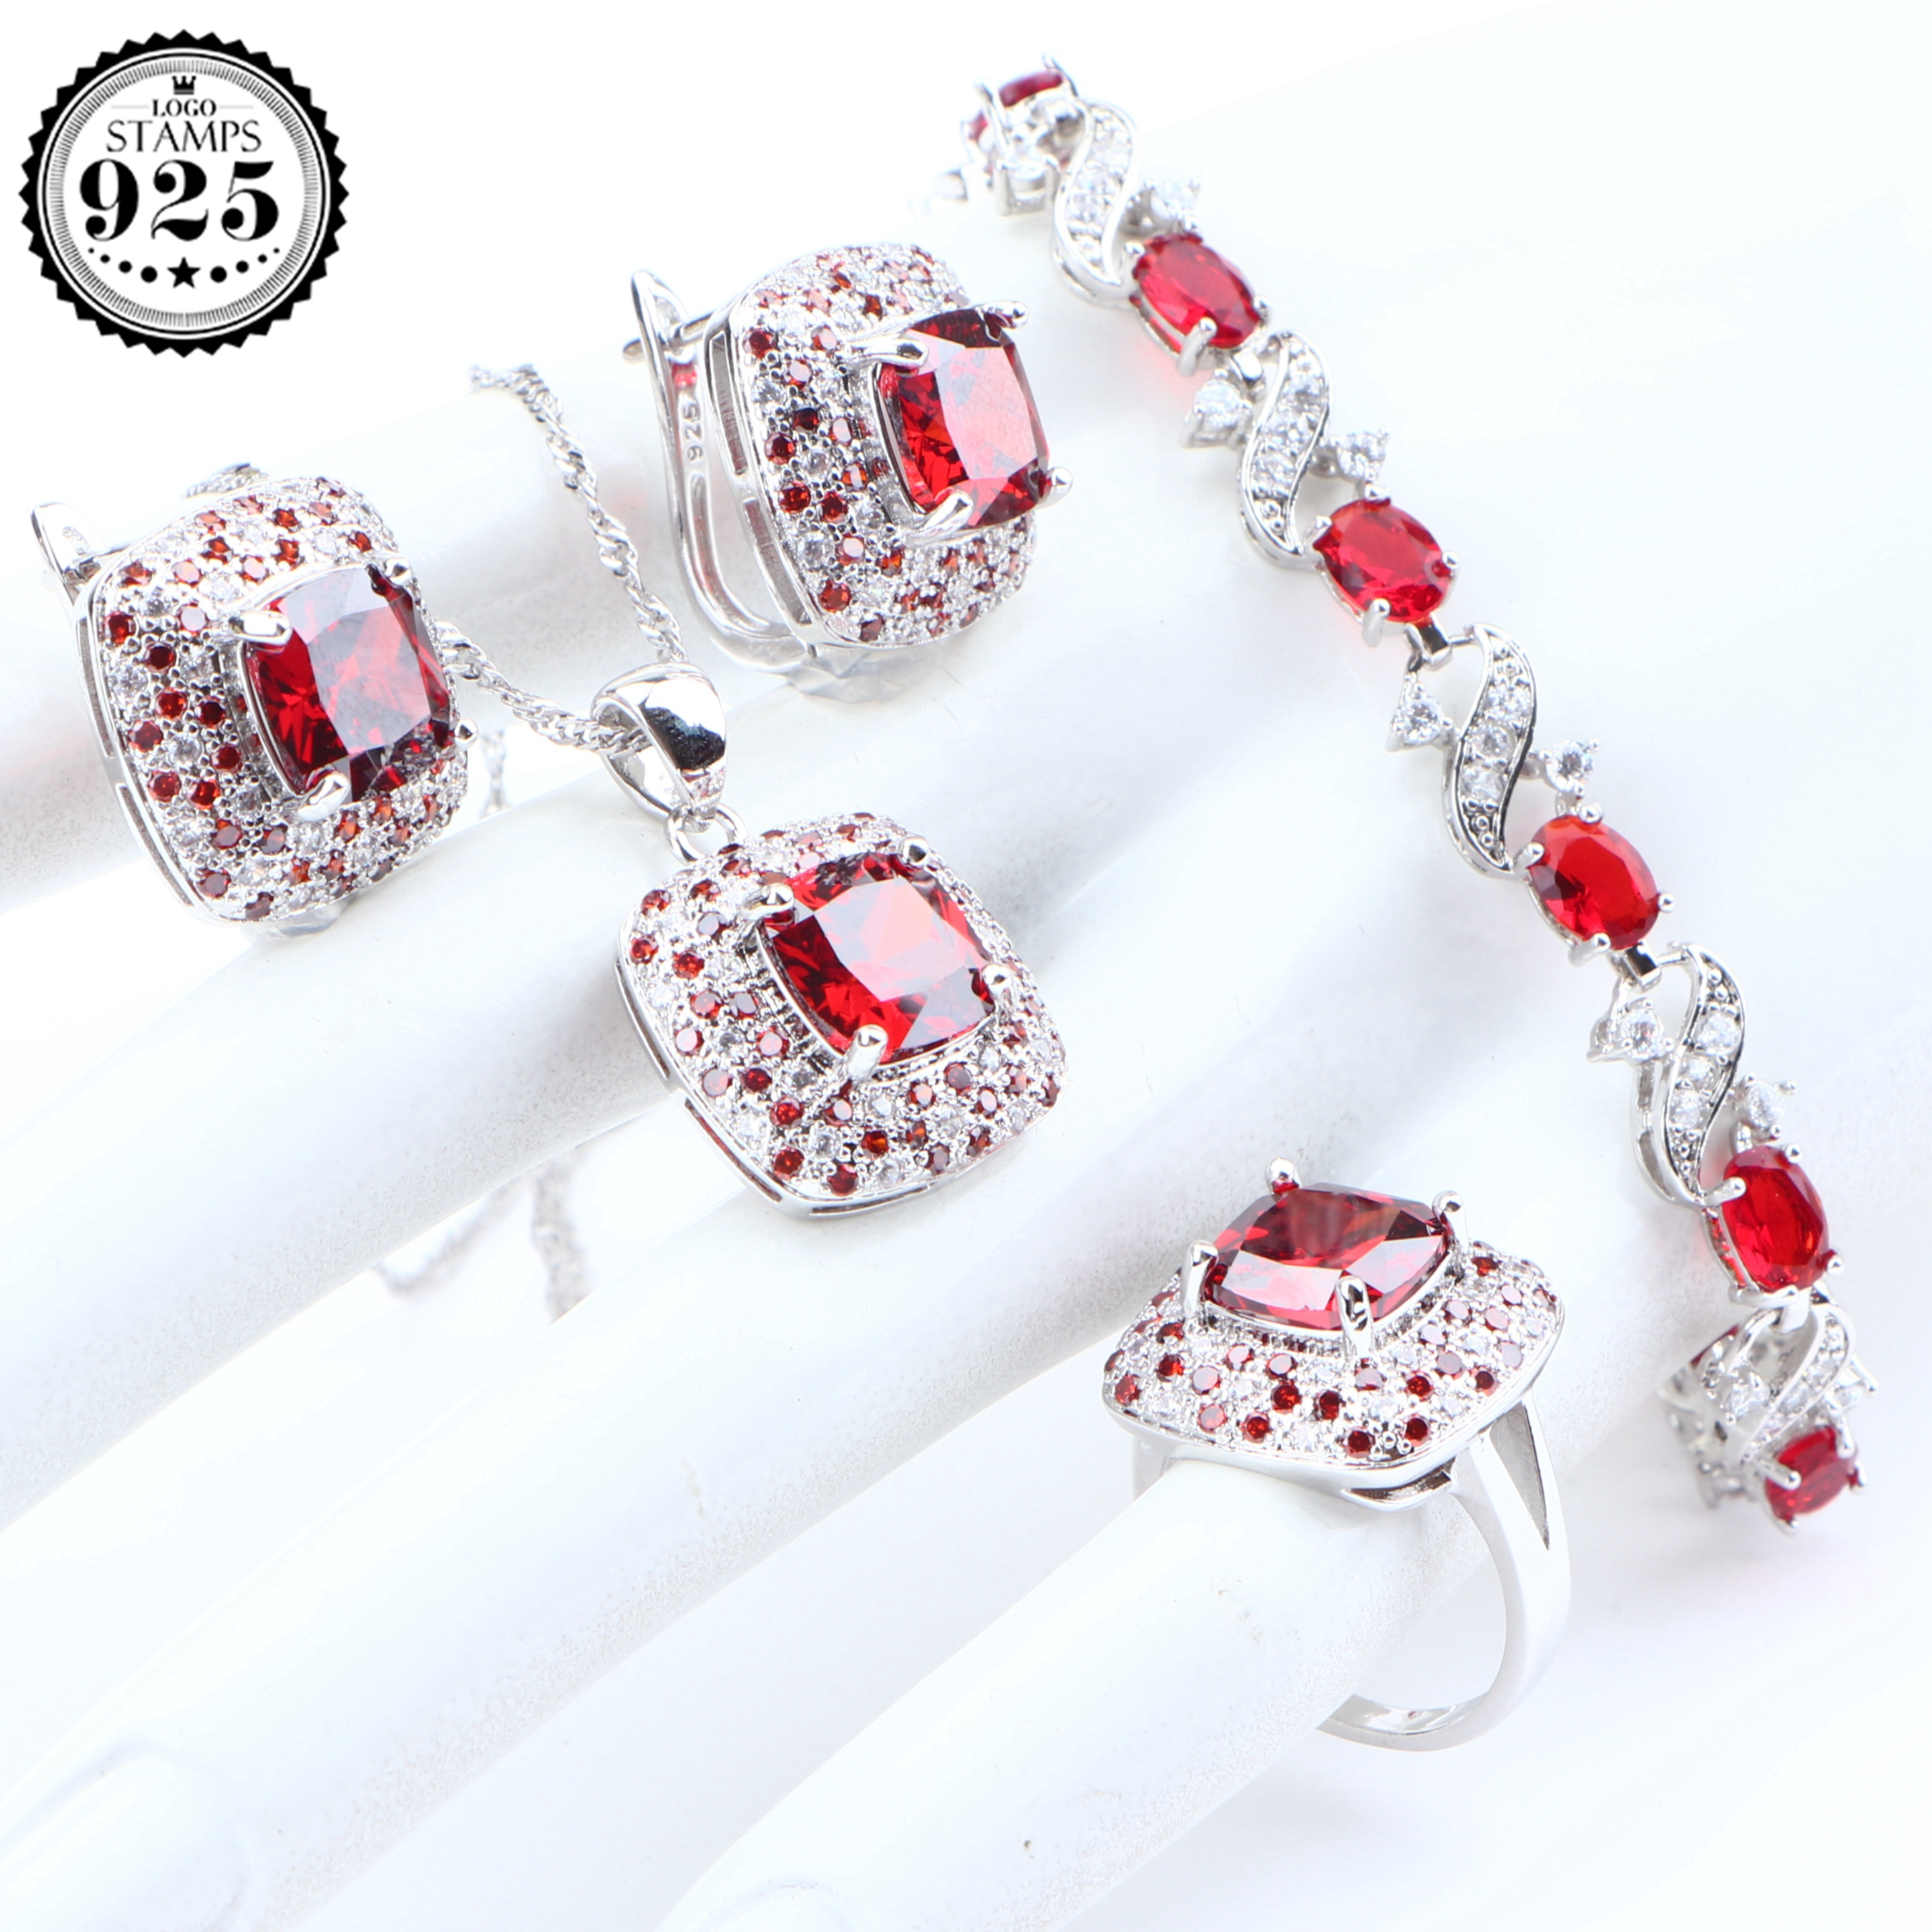 New Bridal Jewelry Sets 925 Sterling Silver  Wedding Jewelry Zirconia Earrings For Women Bracelet Rings Necklace Set Gifts Box